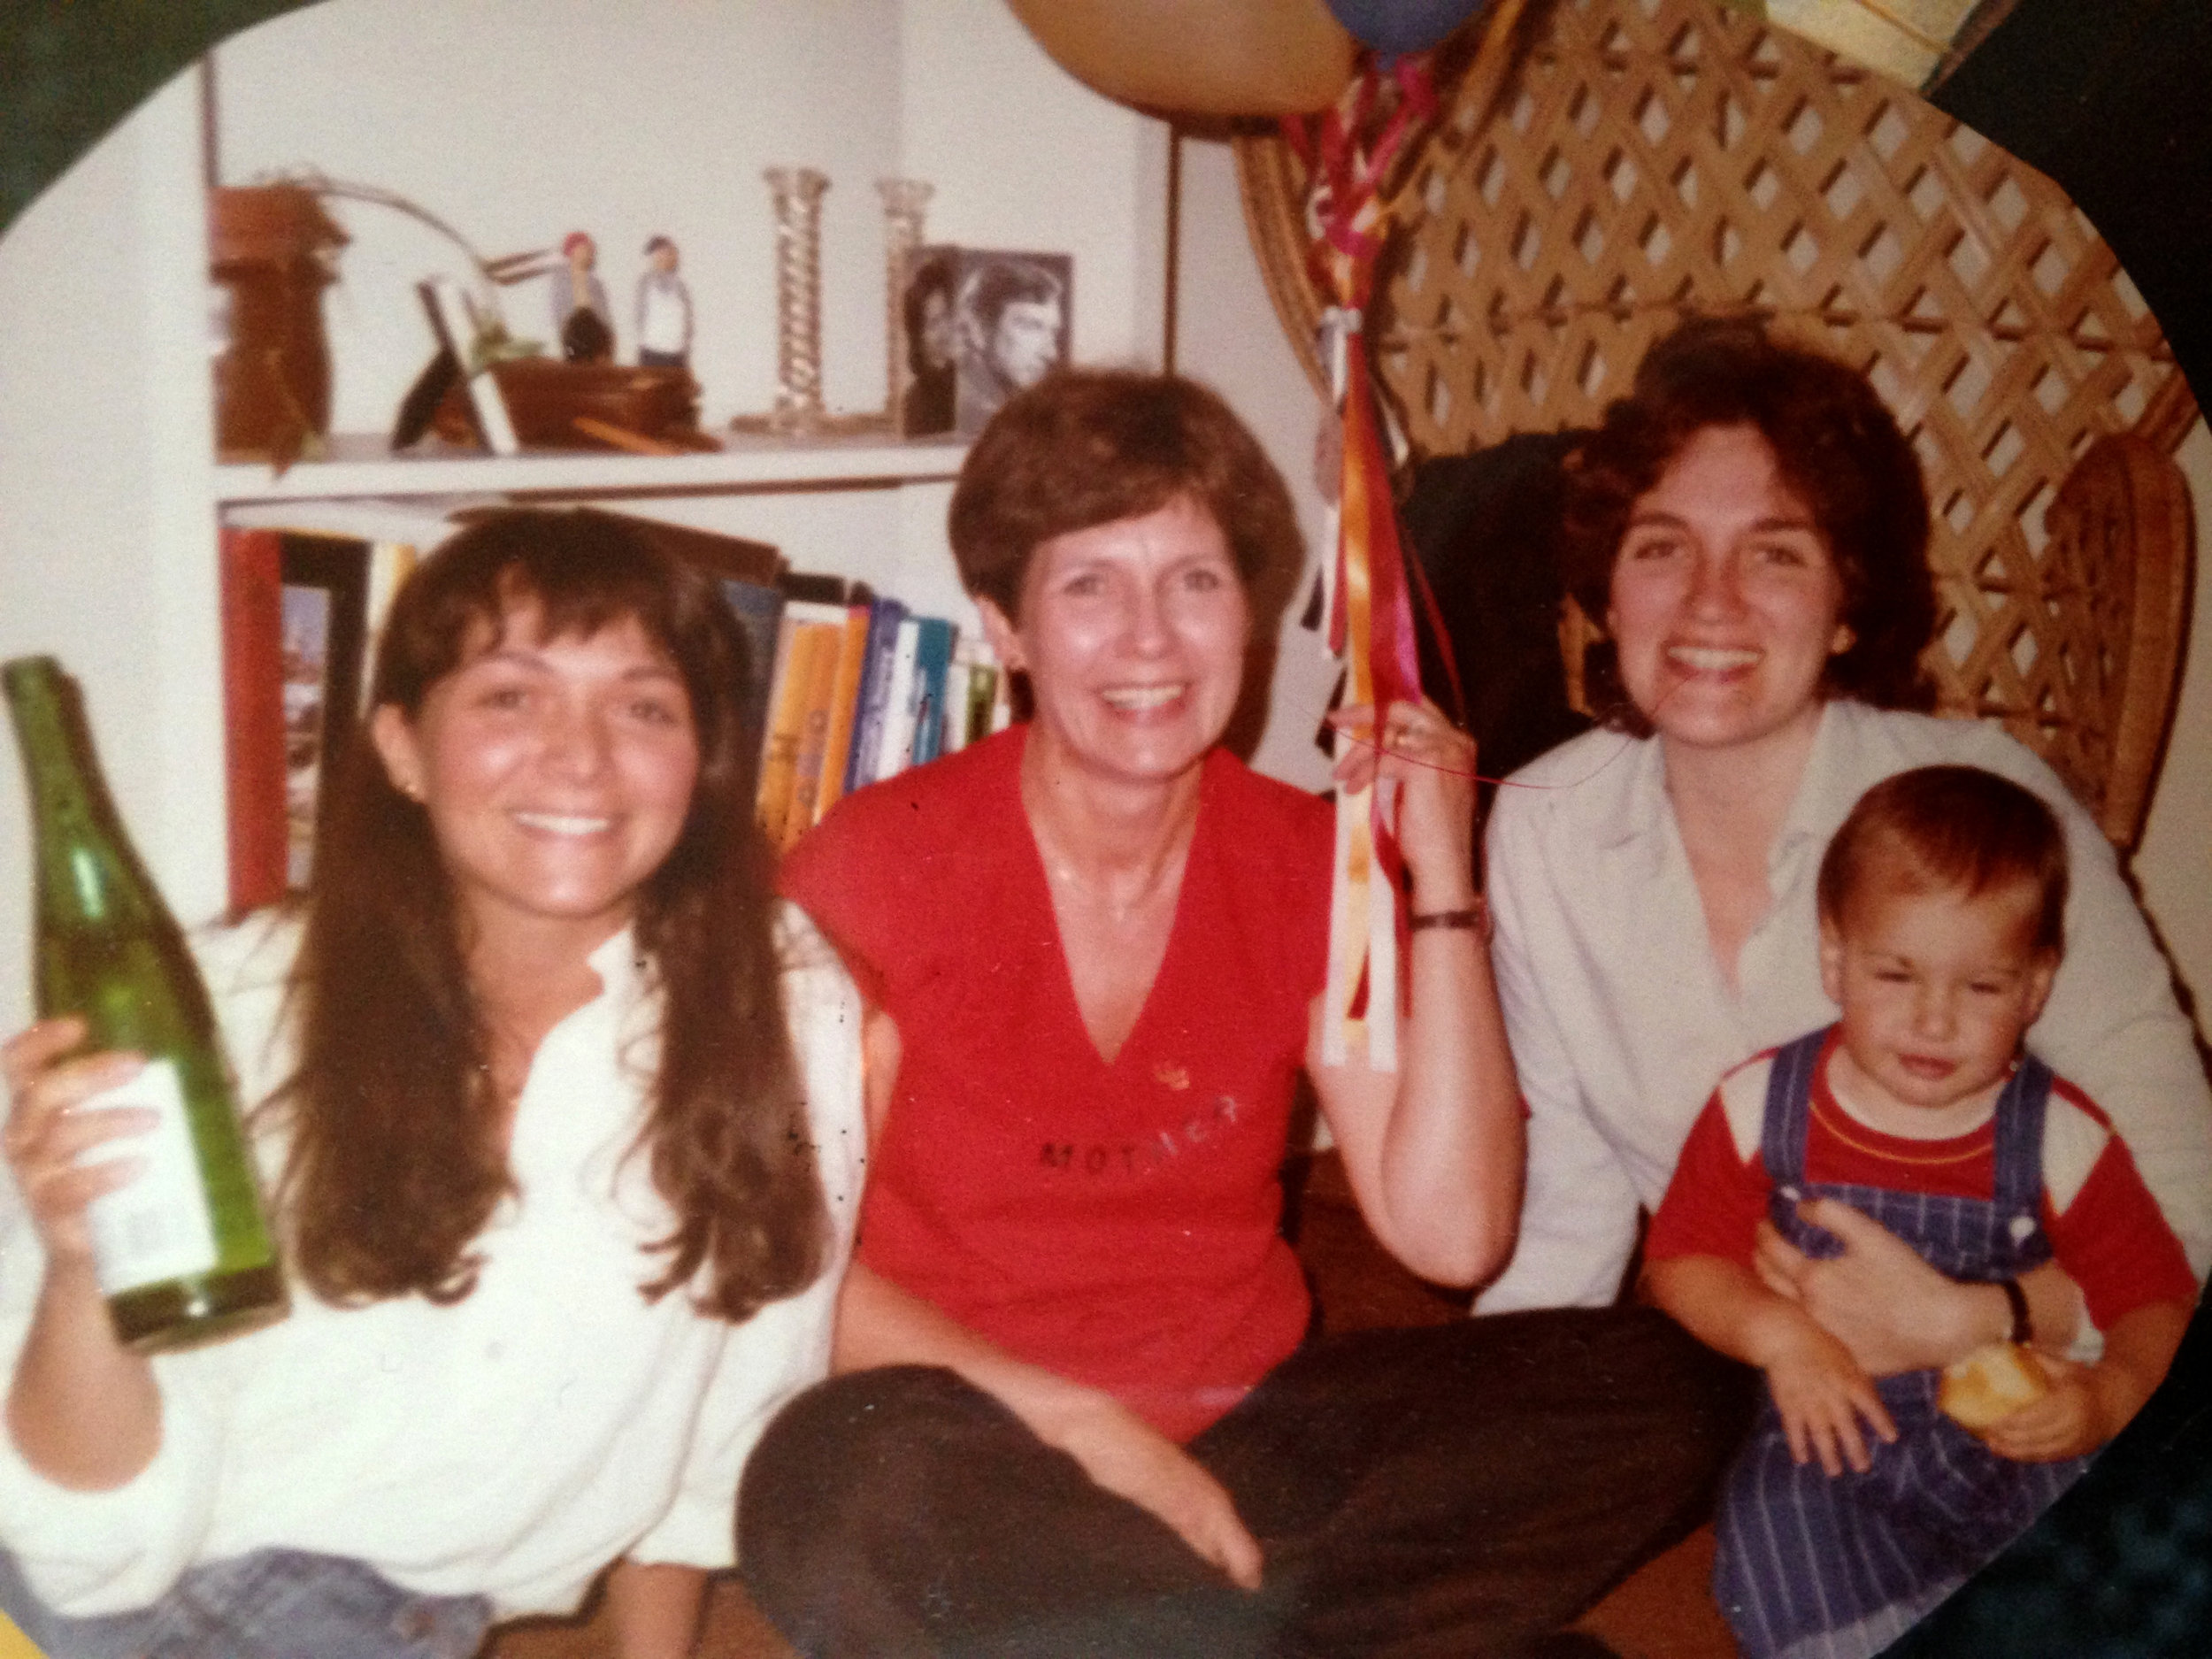 The Bernstein Women circa 1980 (left to right): Ellen, Miriam, and Susan (also featuring my brother Aaron in his toddler years)